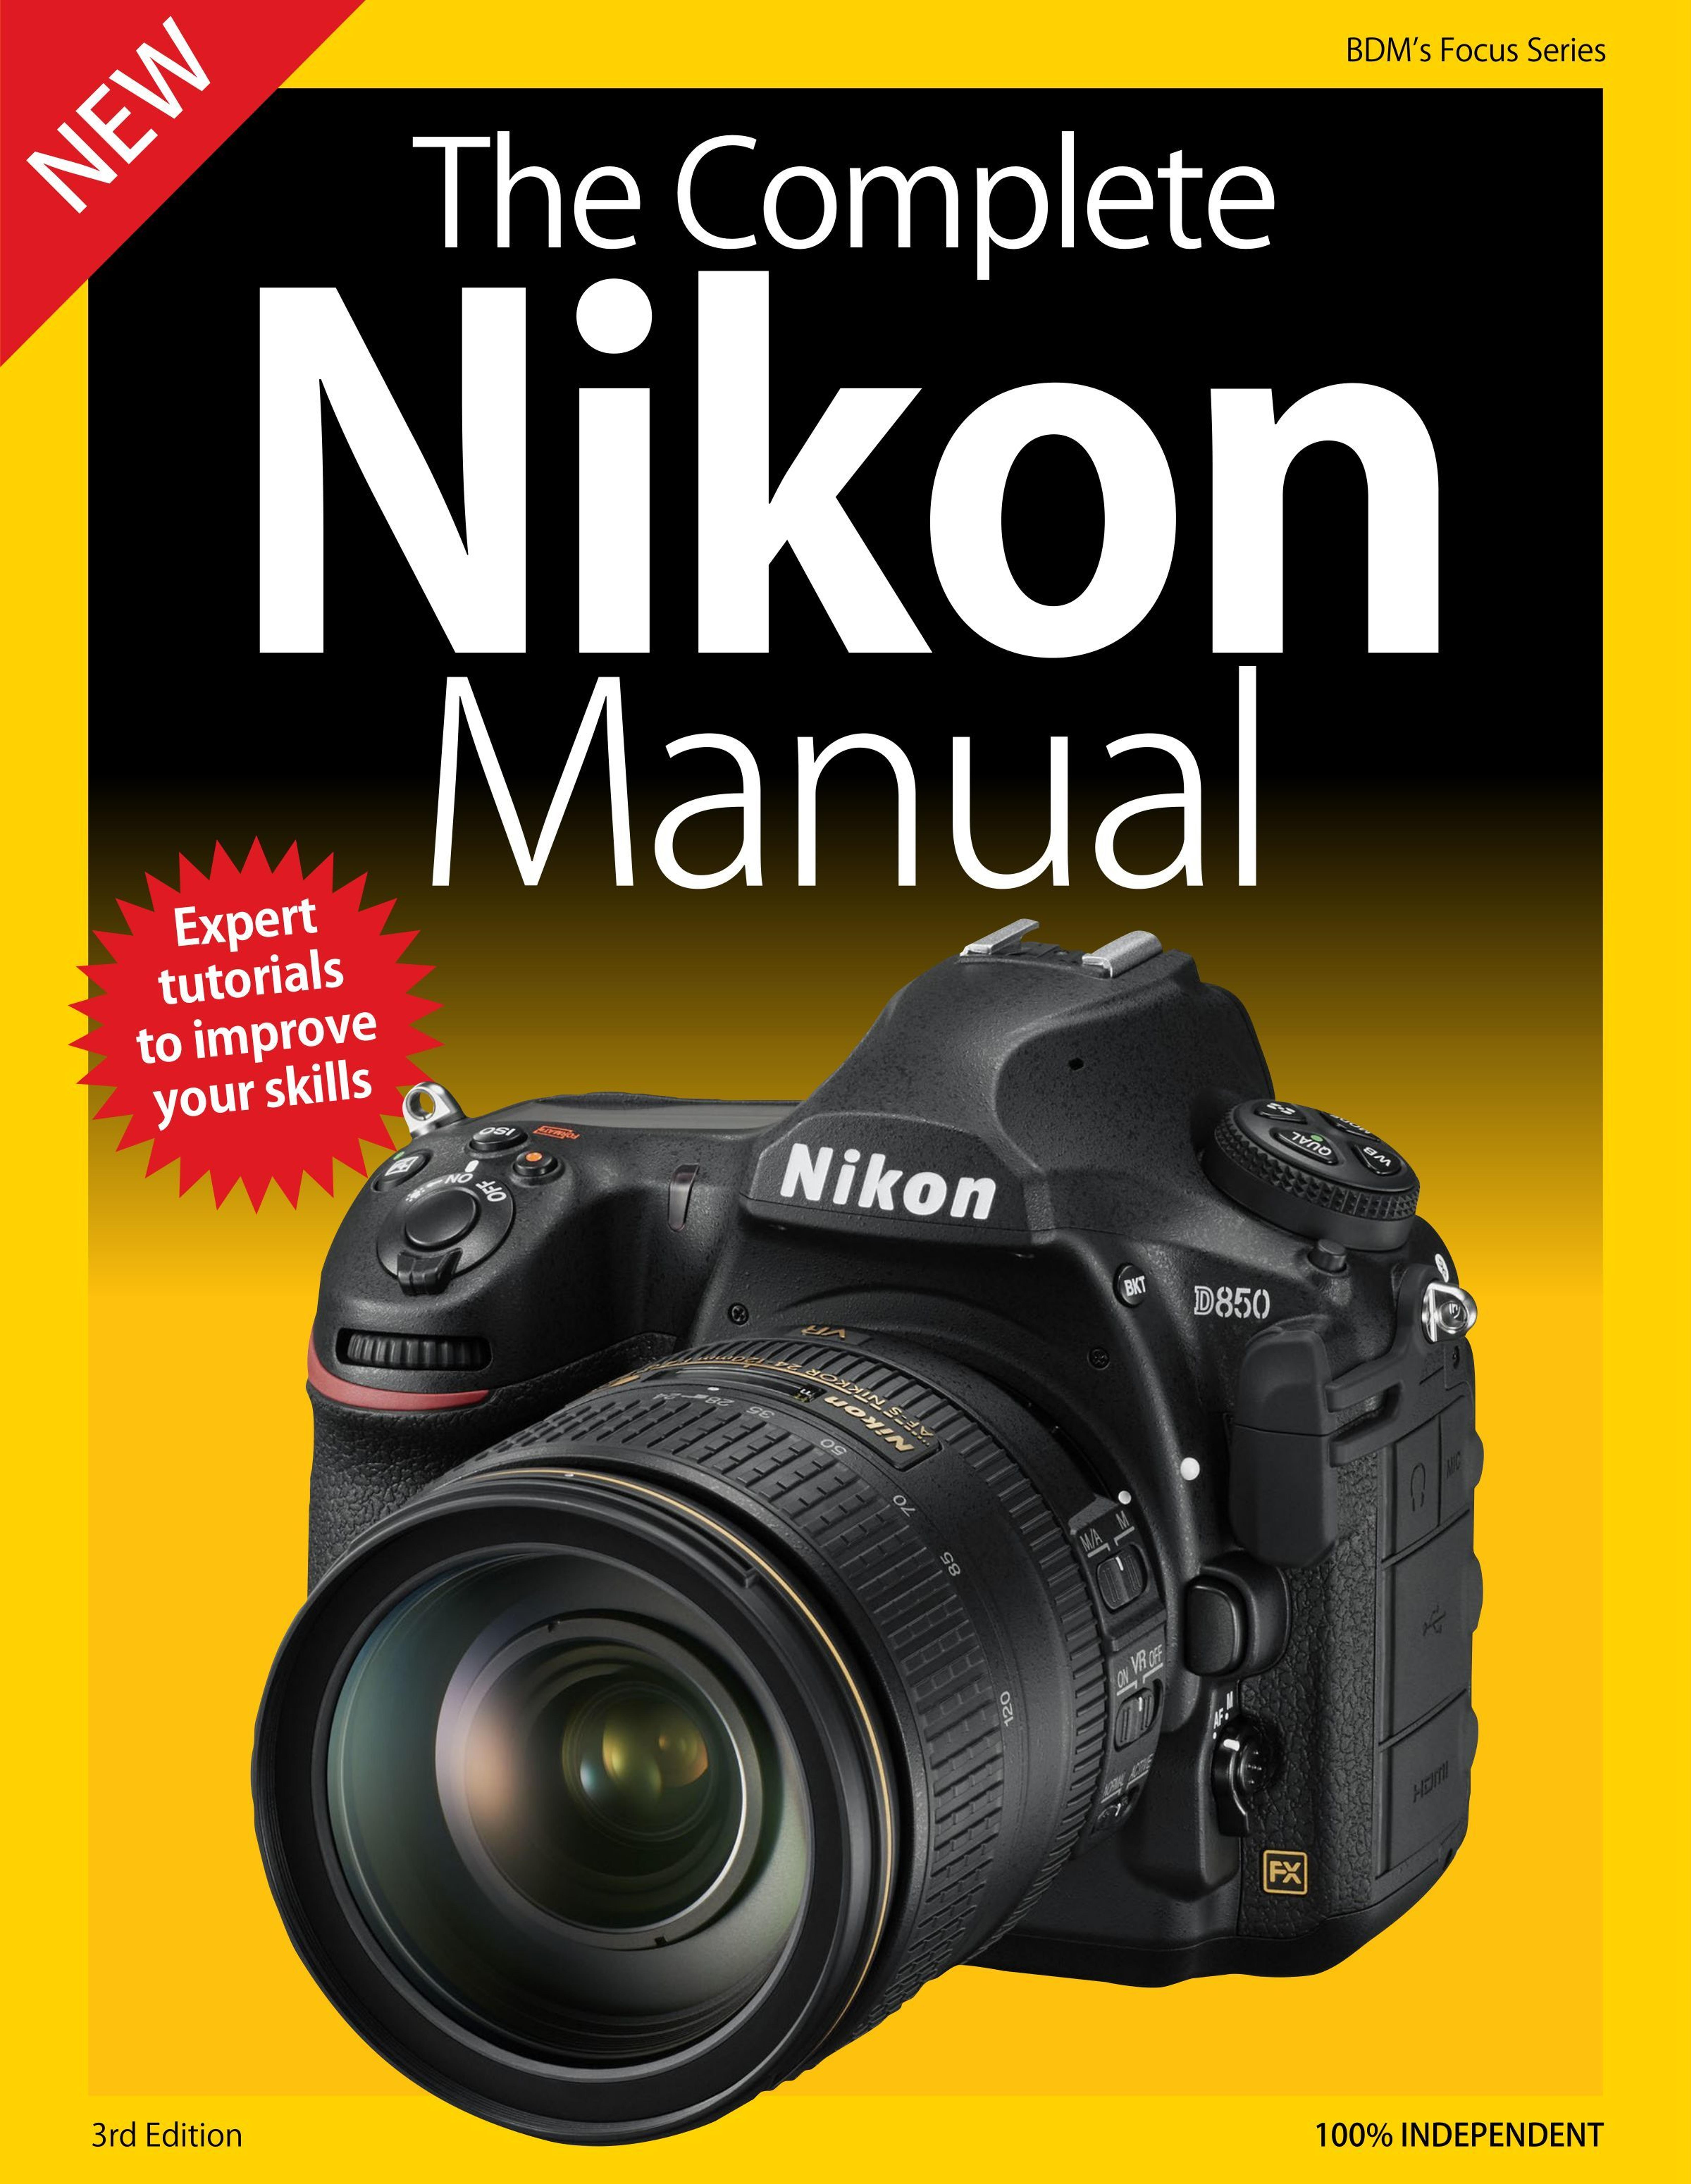 The Complete Nikon Manual - 3rd Edition